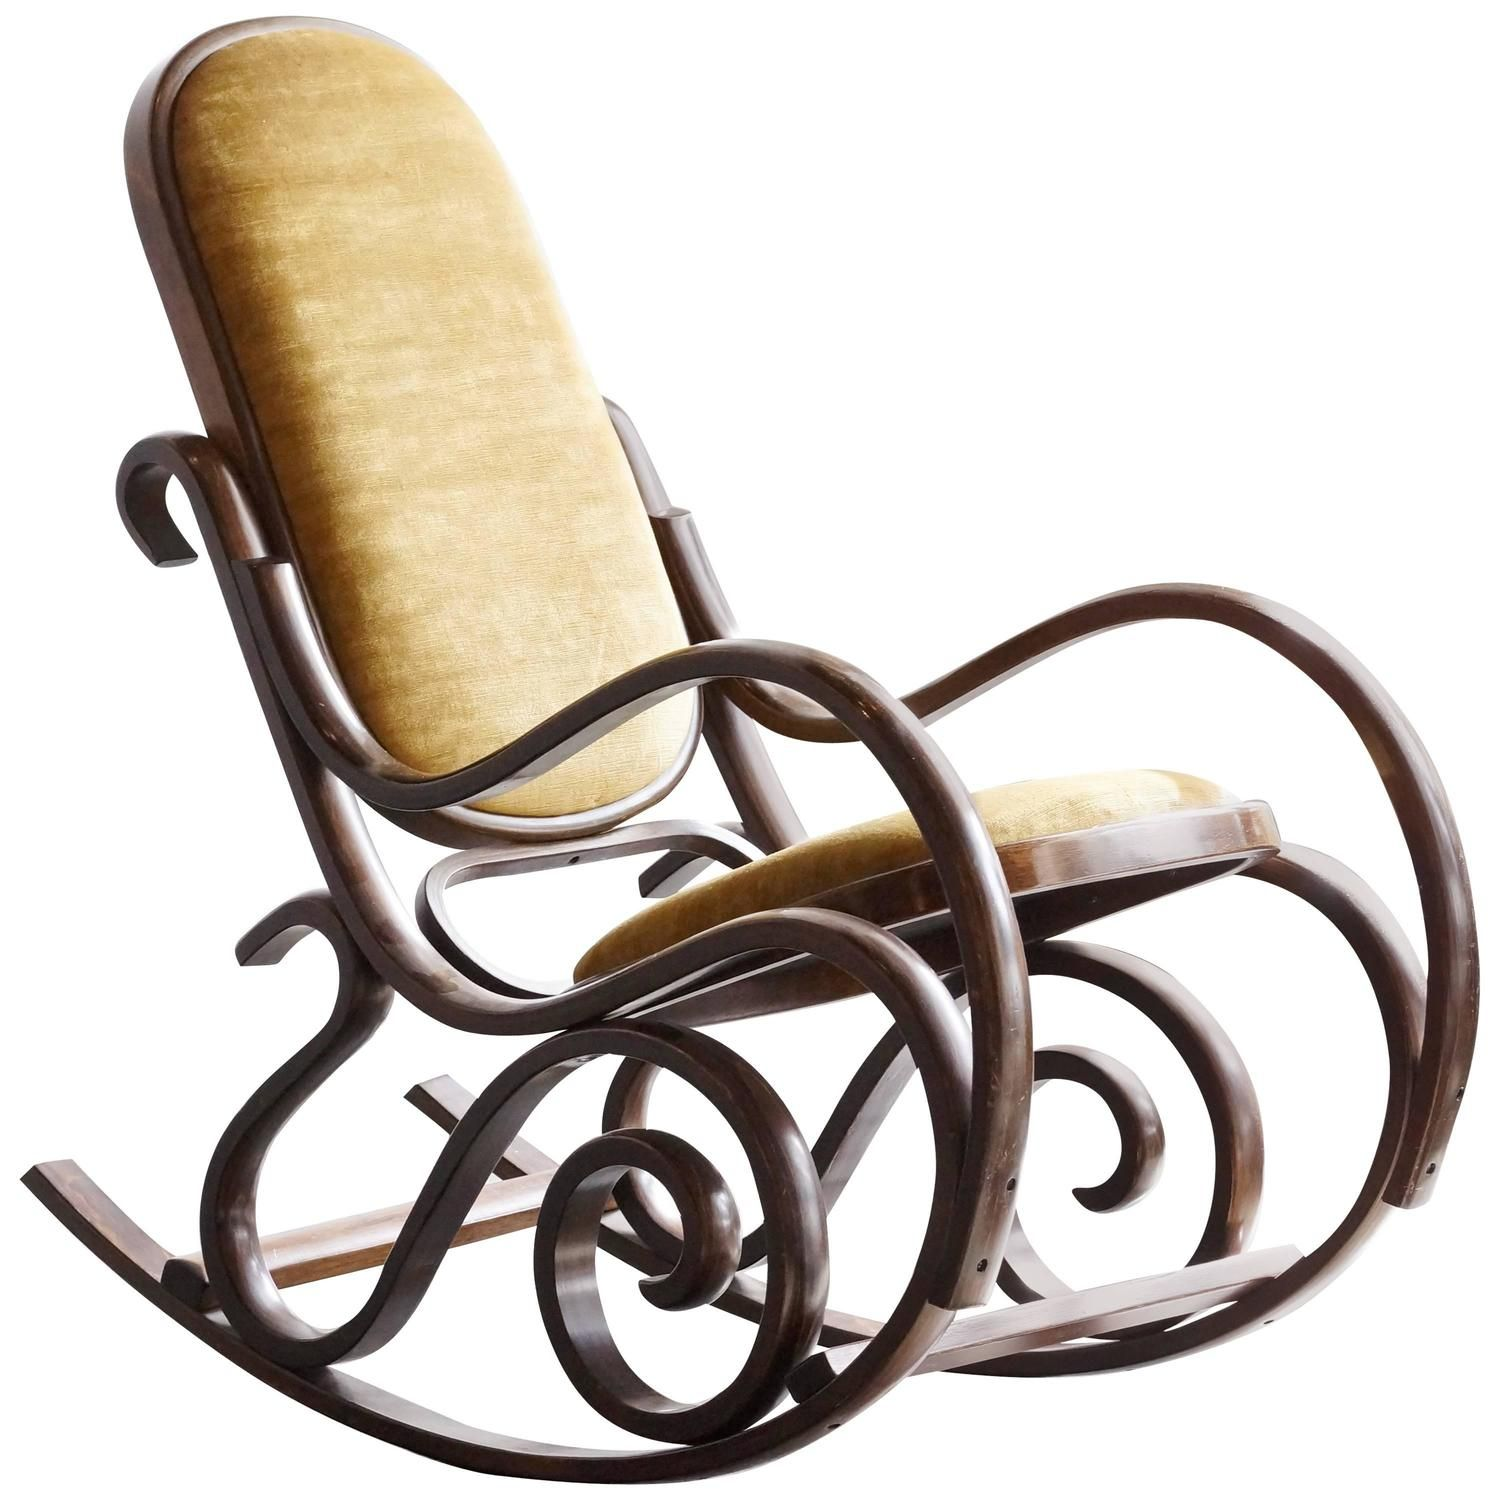 Chaises Thonet à Vendre Thonet Style Bentwood Rocking Chair 1 Design Mobilier Chair